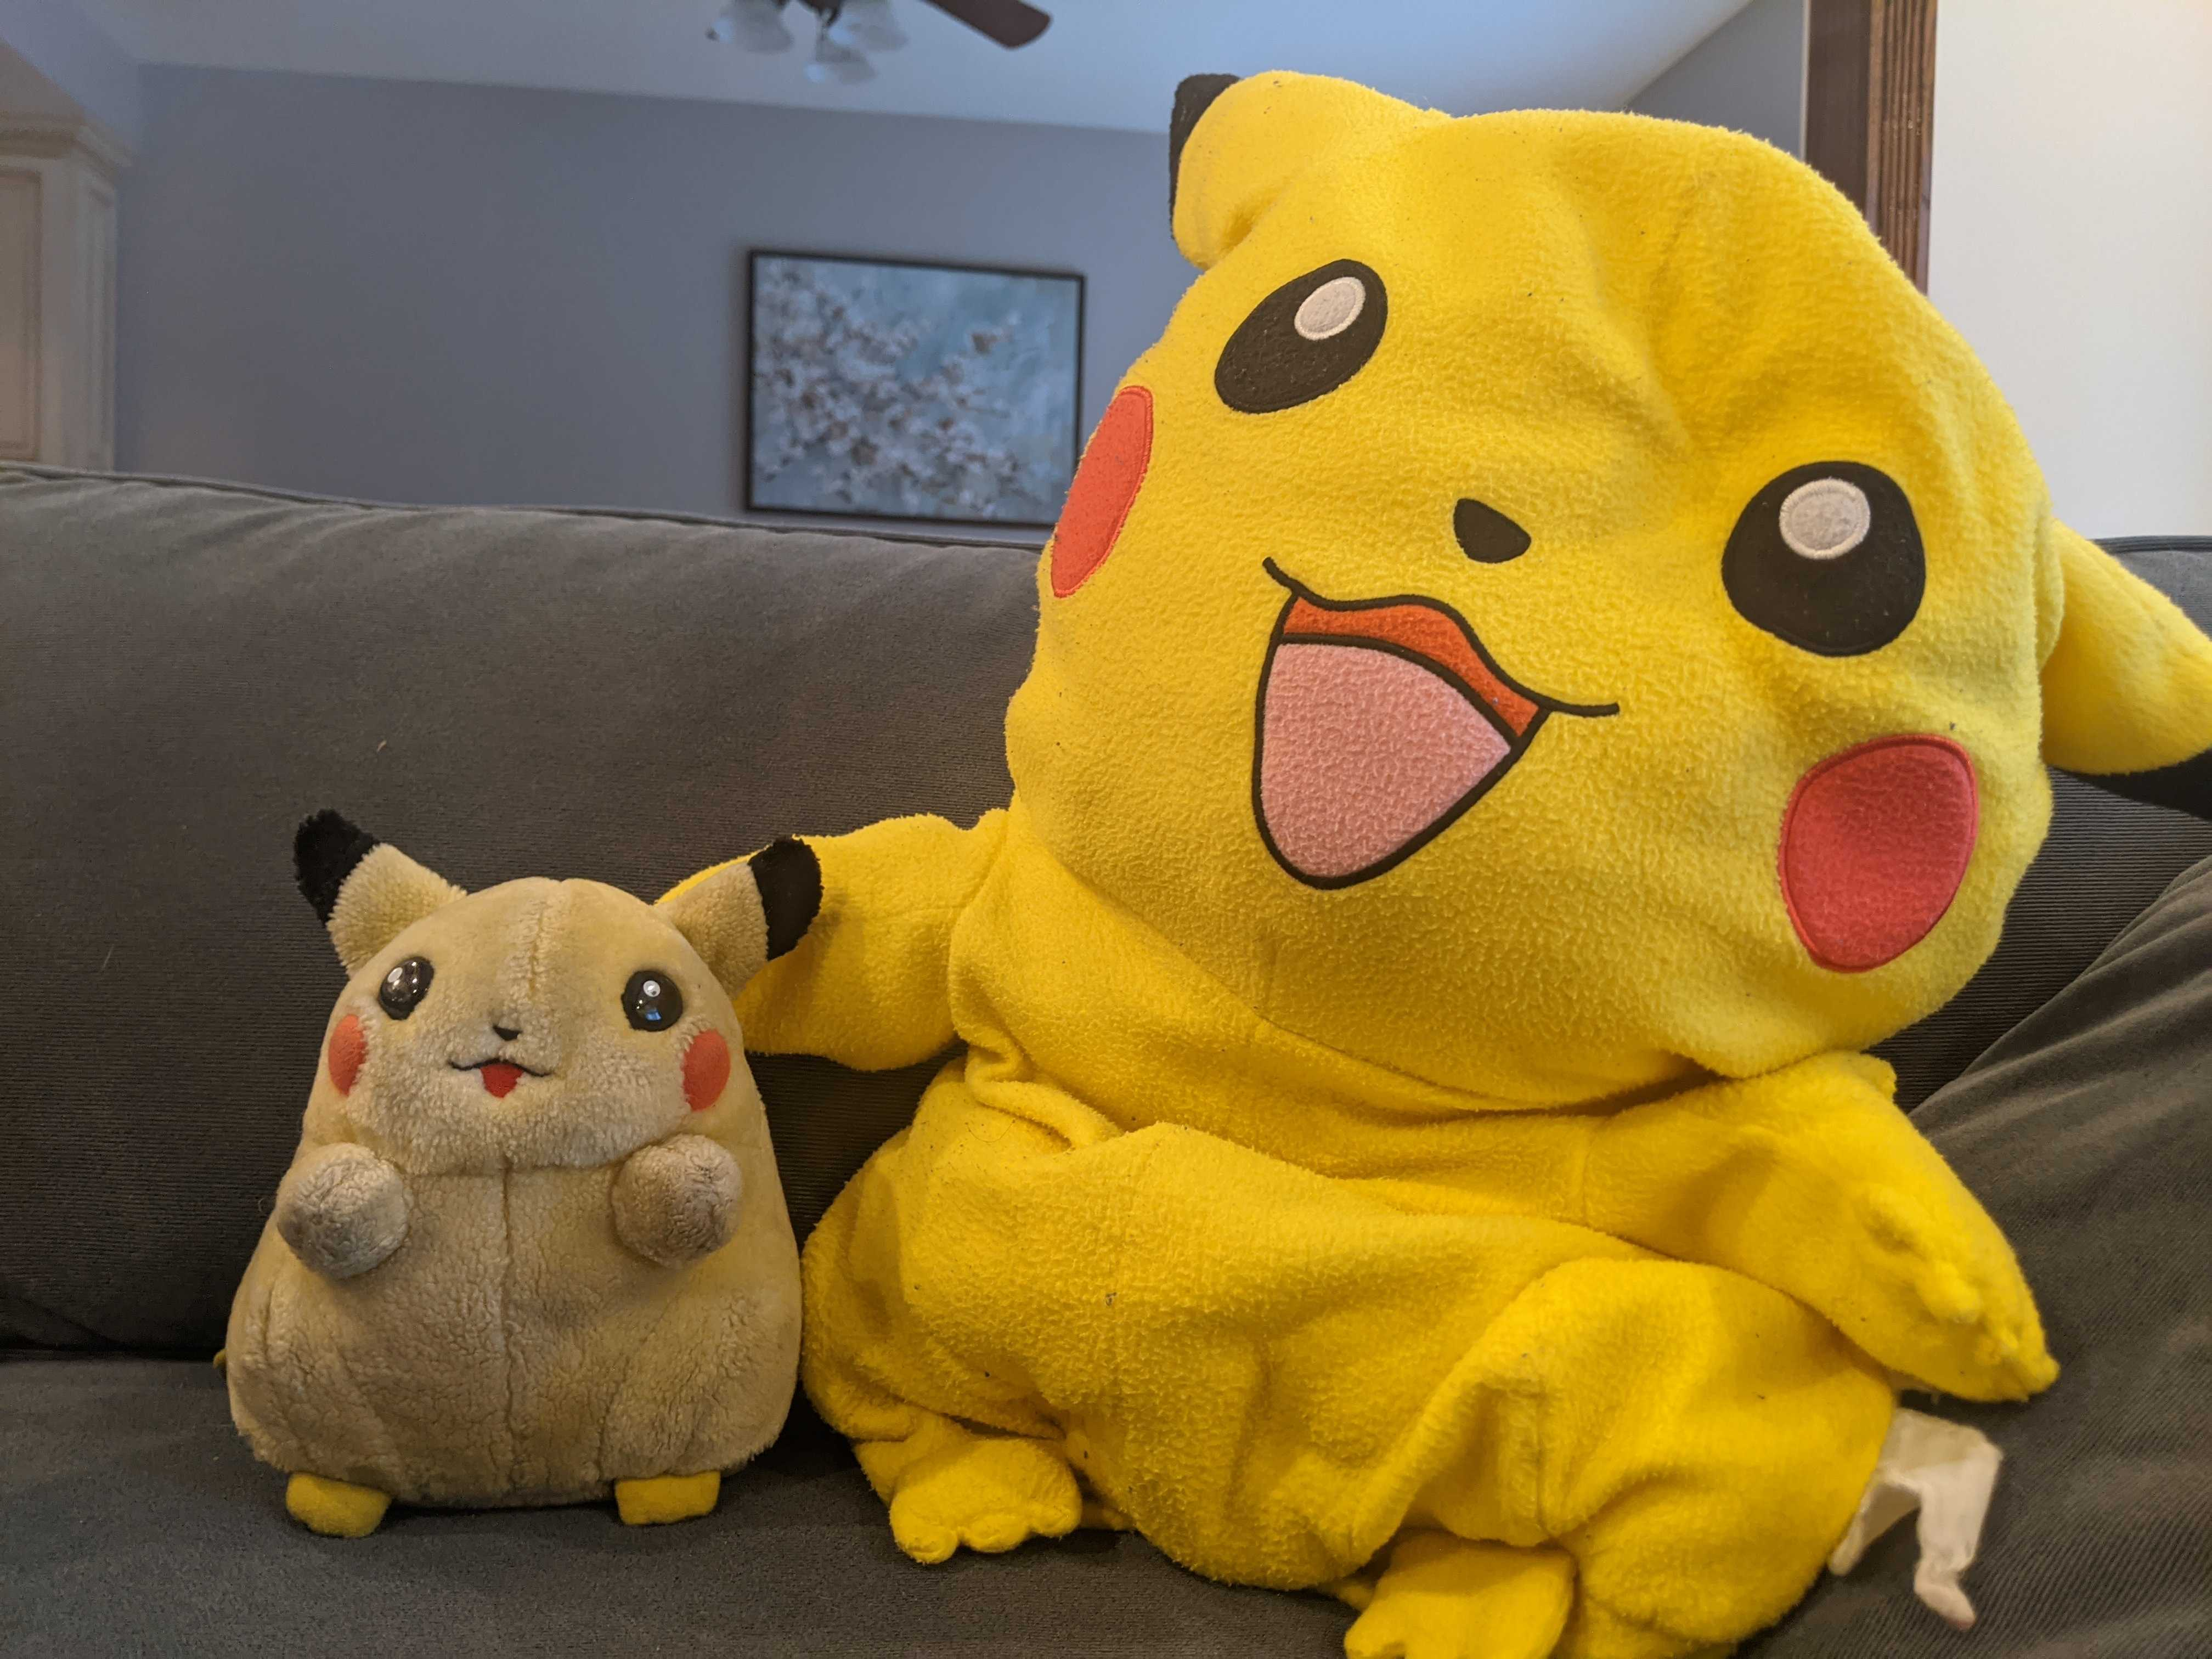 Two stuffed Pikachu sitting on a couch.